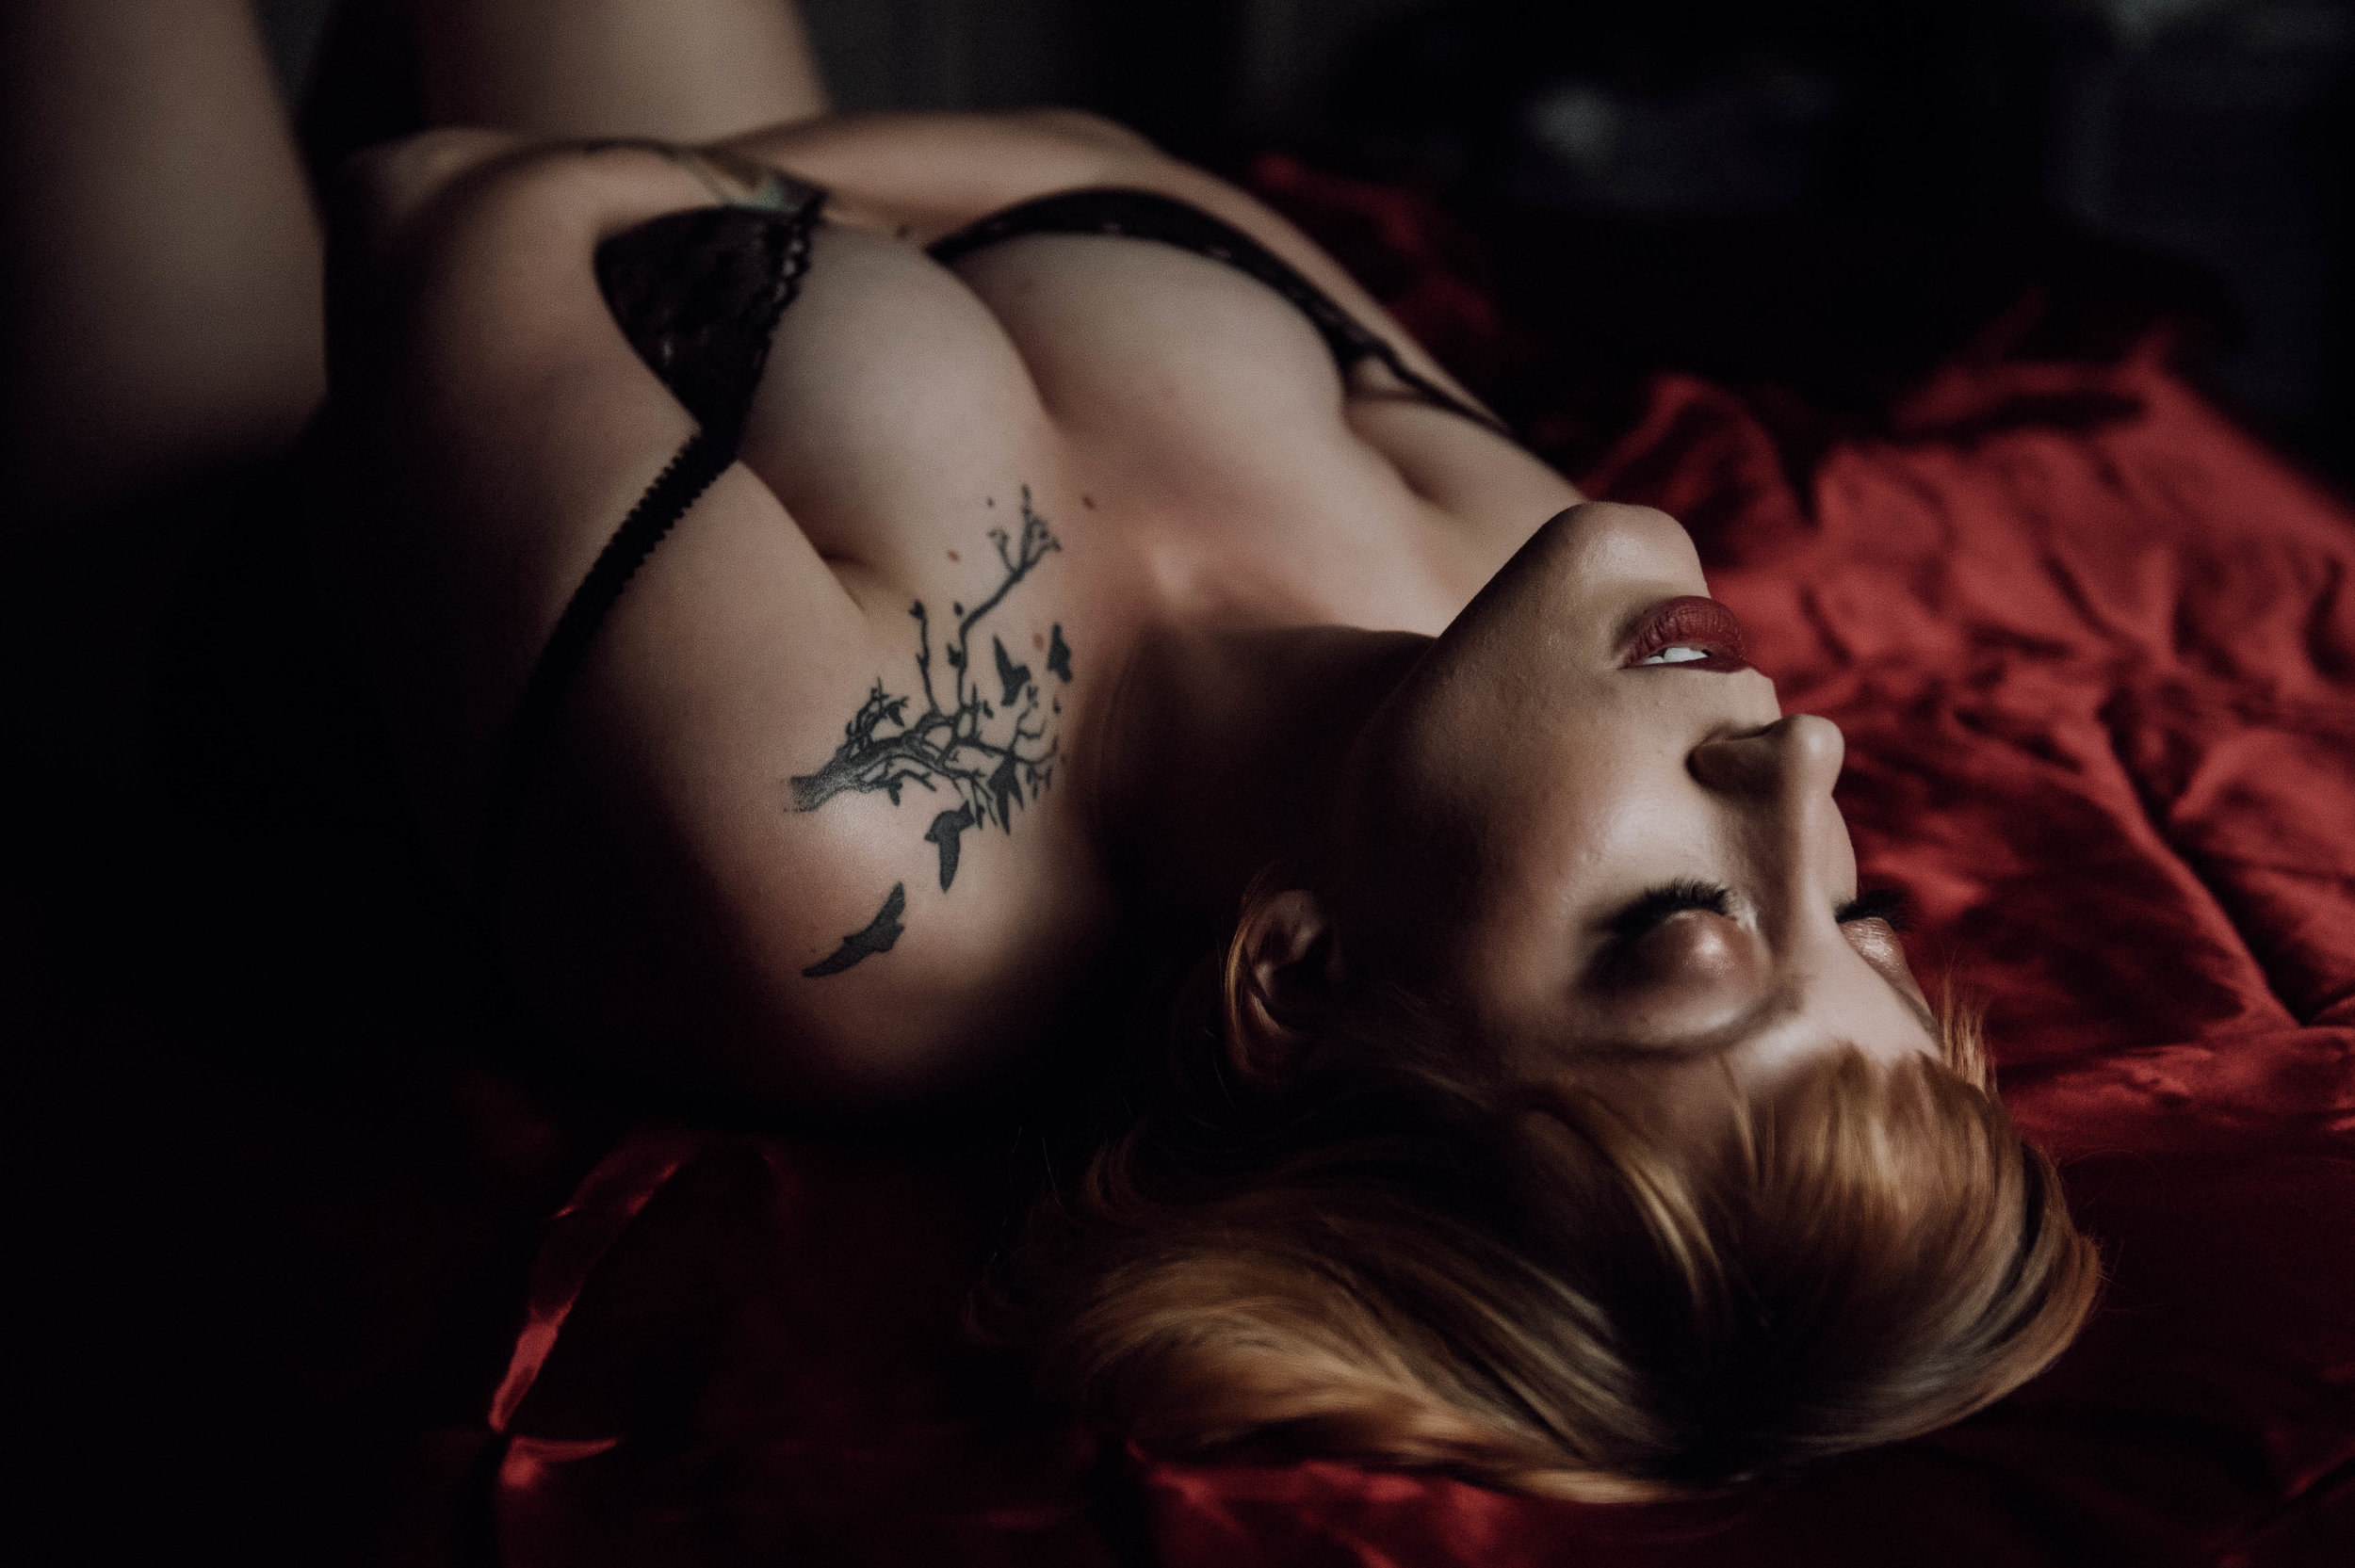 Redhead woman laying on red sheets in black lace bodysuit boudoir photography new york city studio